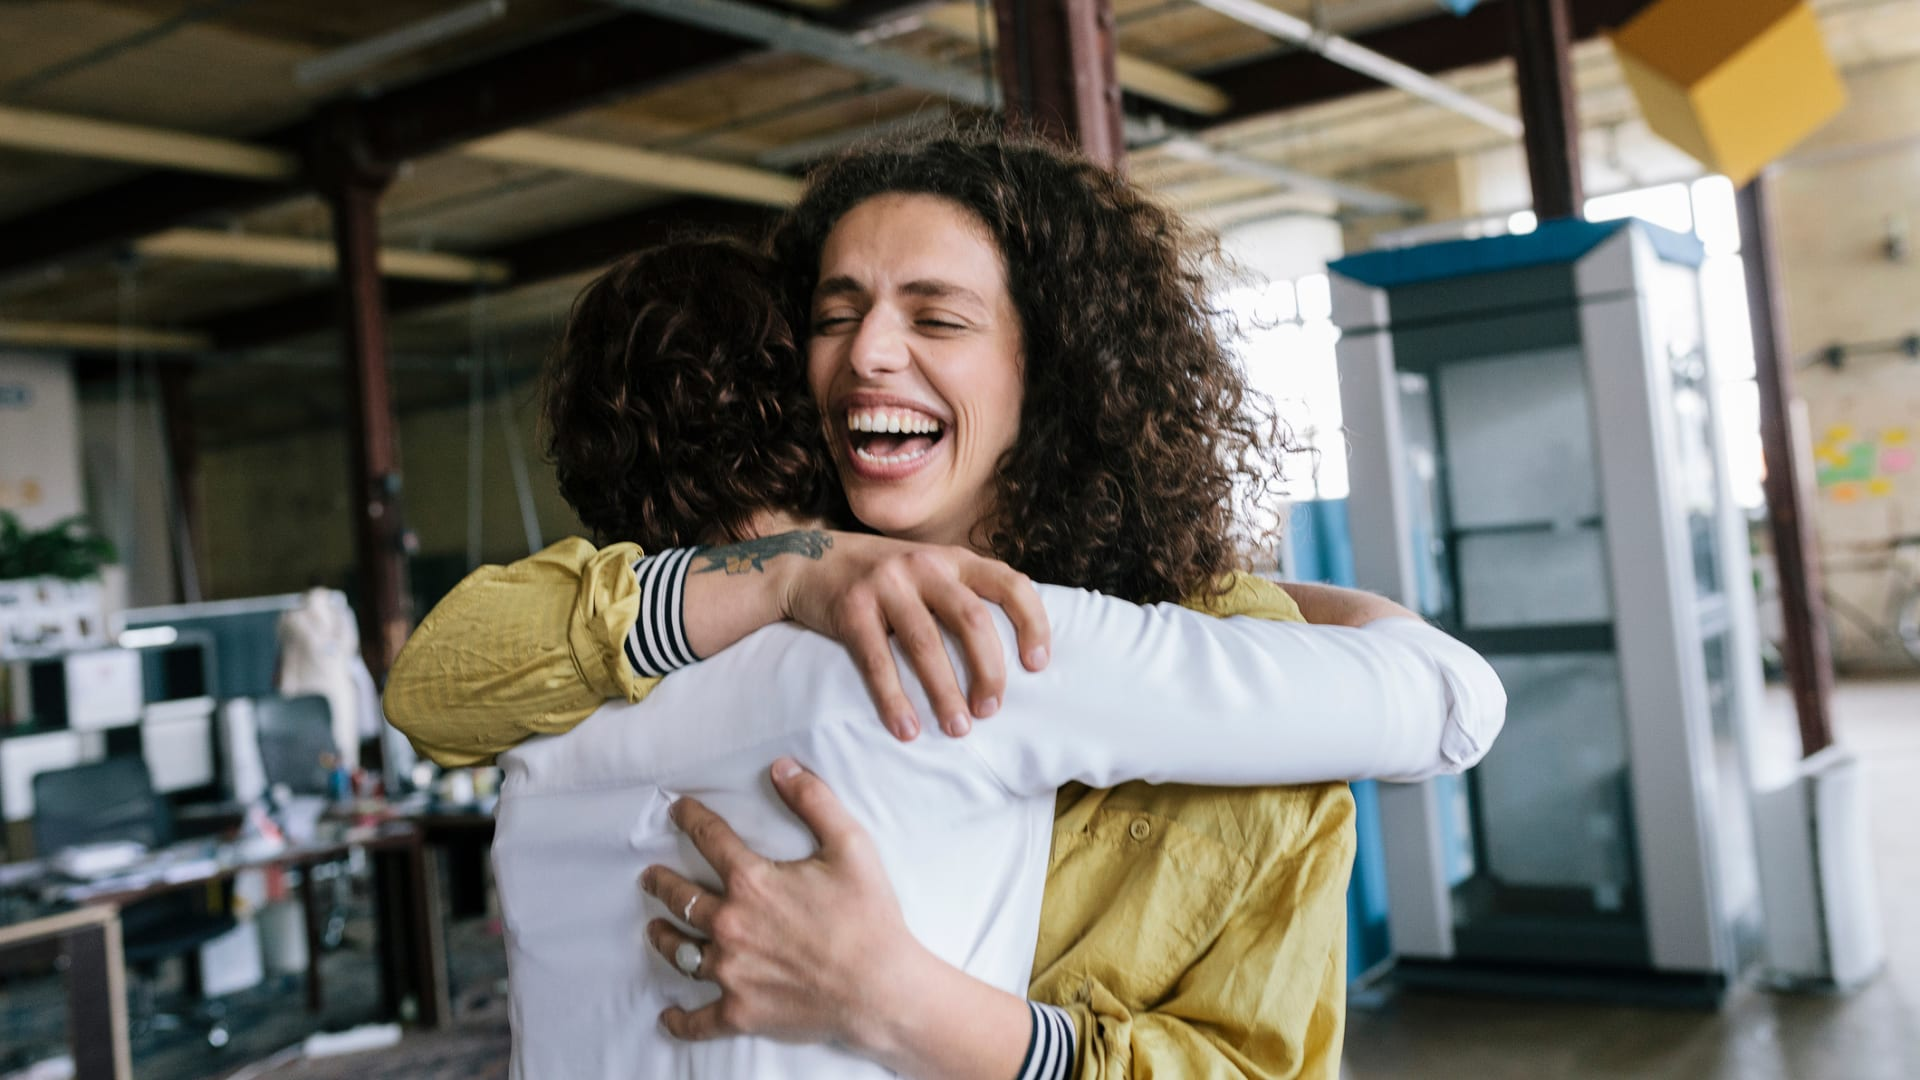 3 Tips for Creating a Caring, Open Workplace Culture